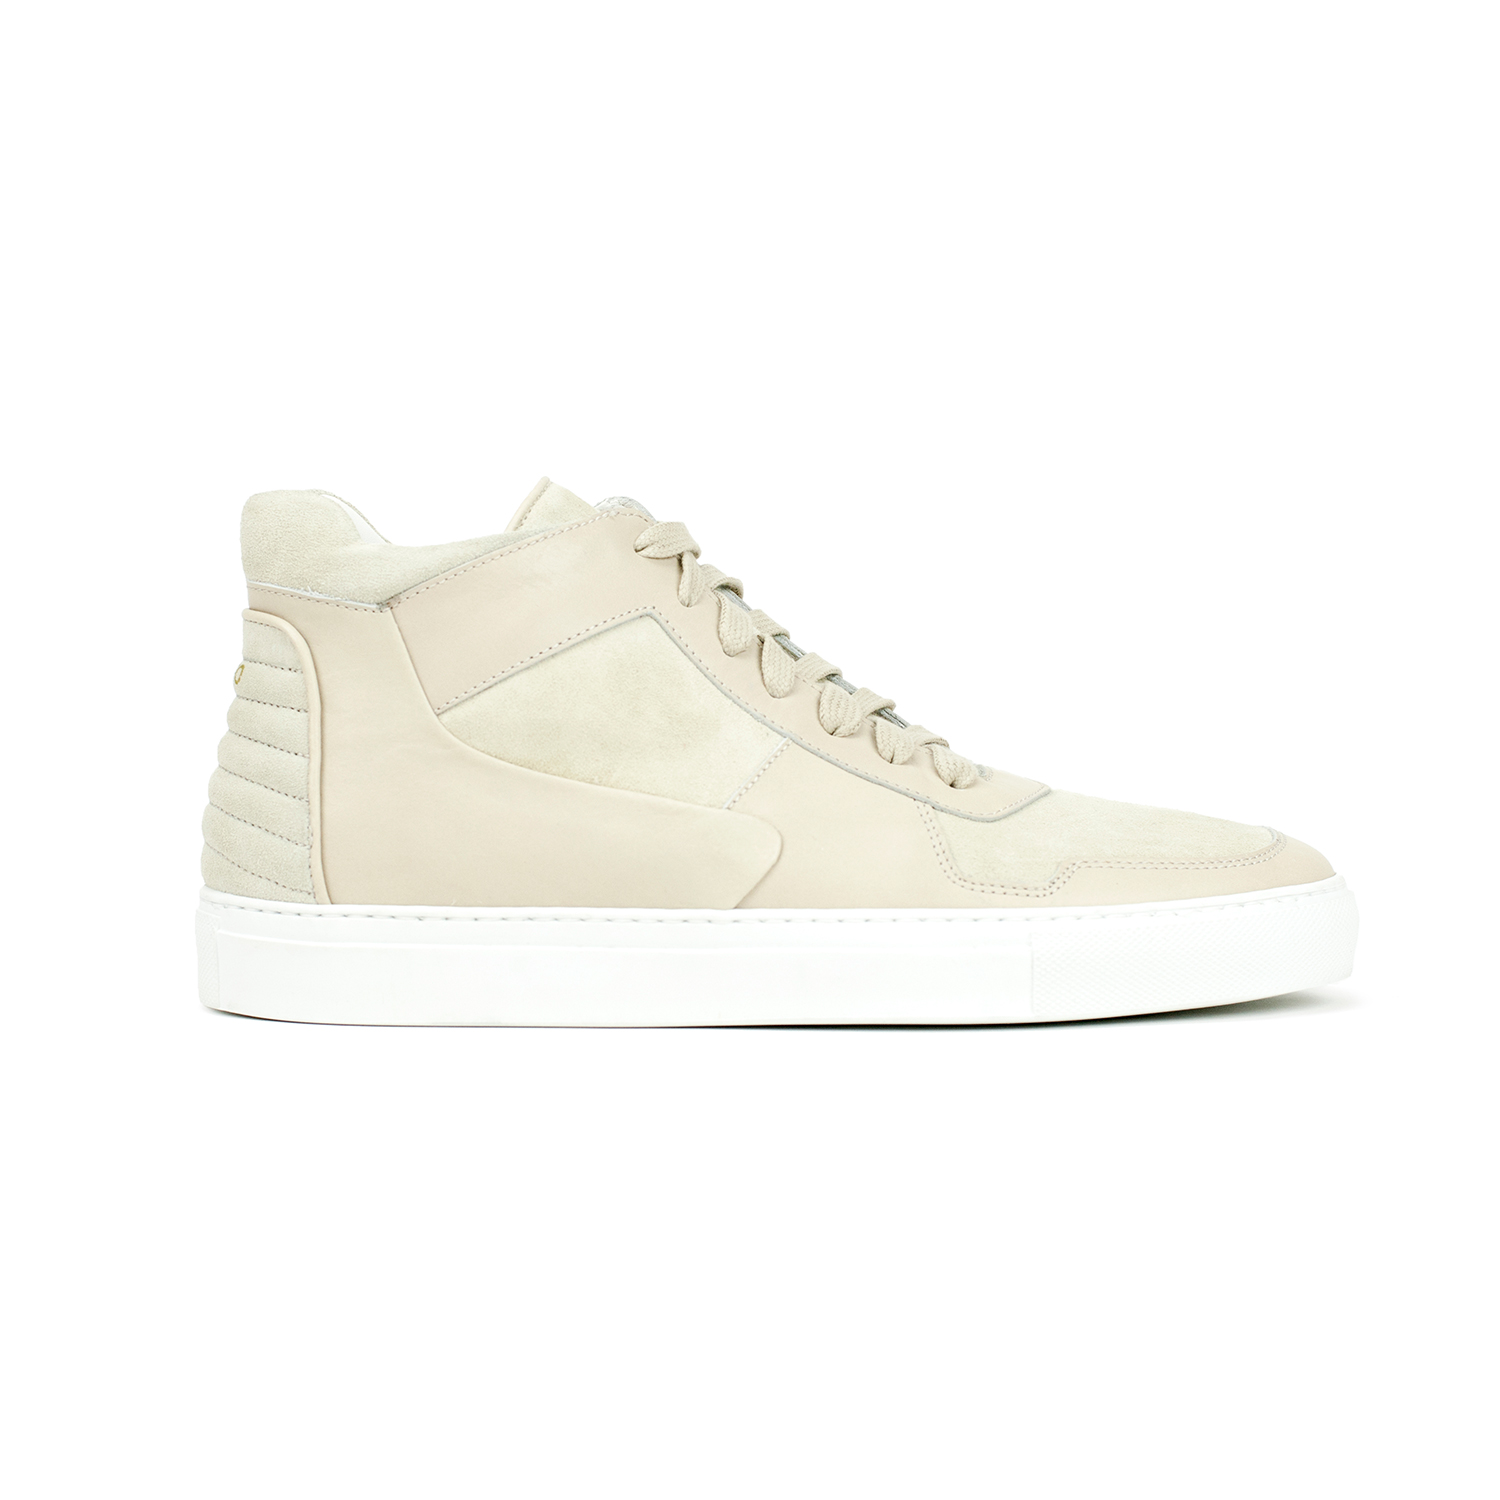 3a07e631c55a Vesta Suede Sneakers    Sand (US  6) - Facto - Touch of Modern